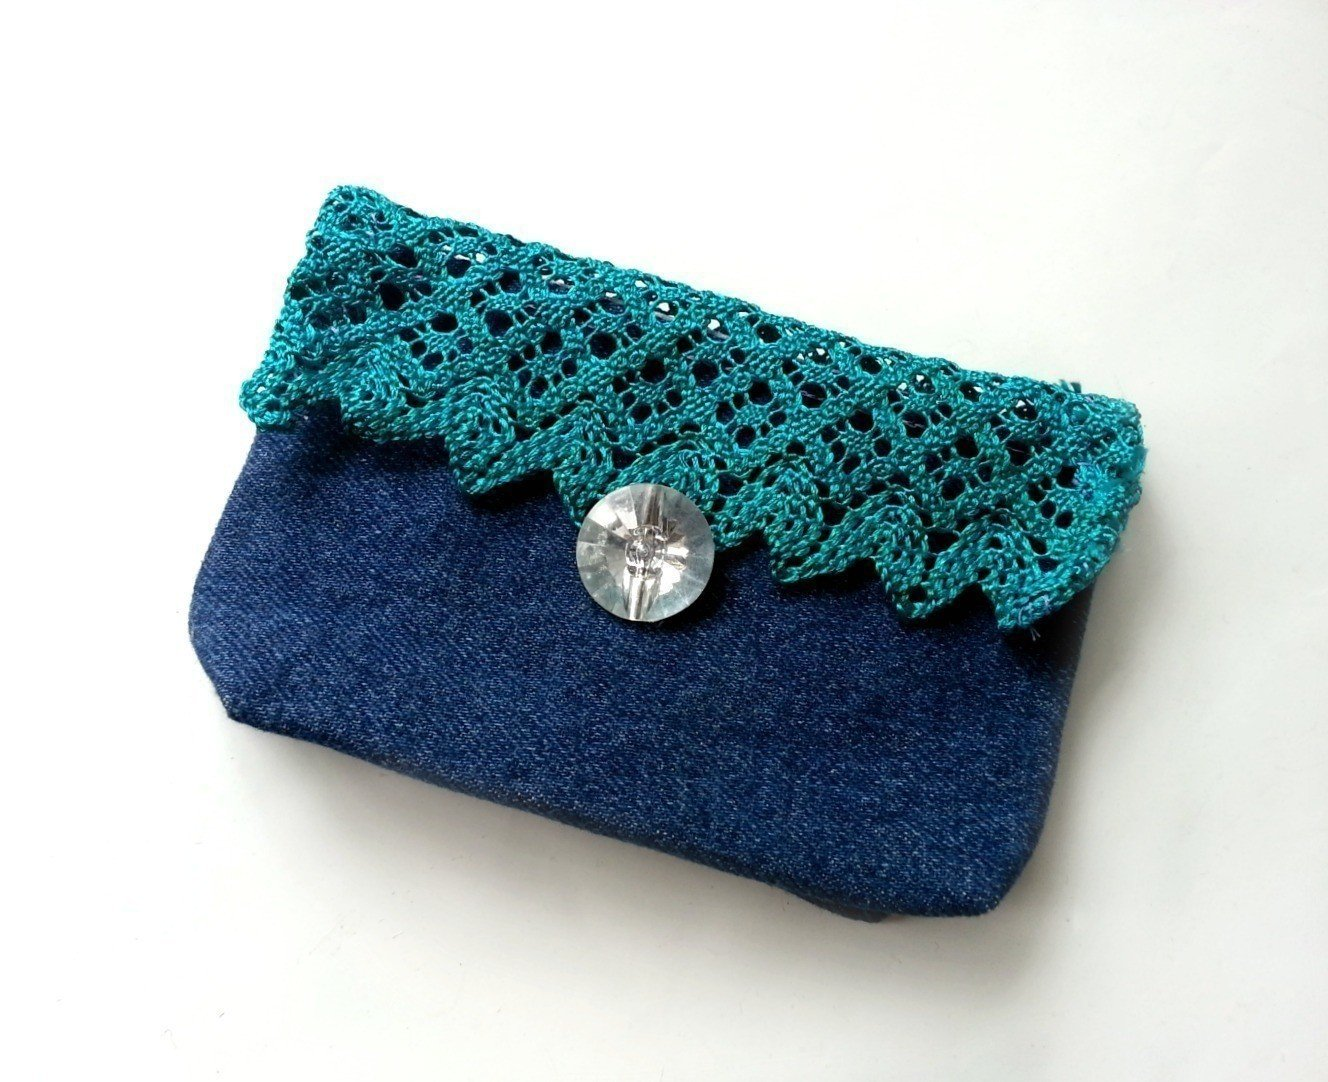 How To Make Crochet Purse : How to Make a Jean Purse: 19 DIYs Guide Patterns